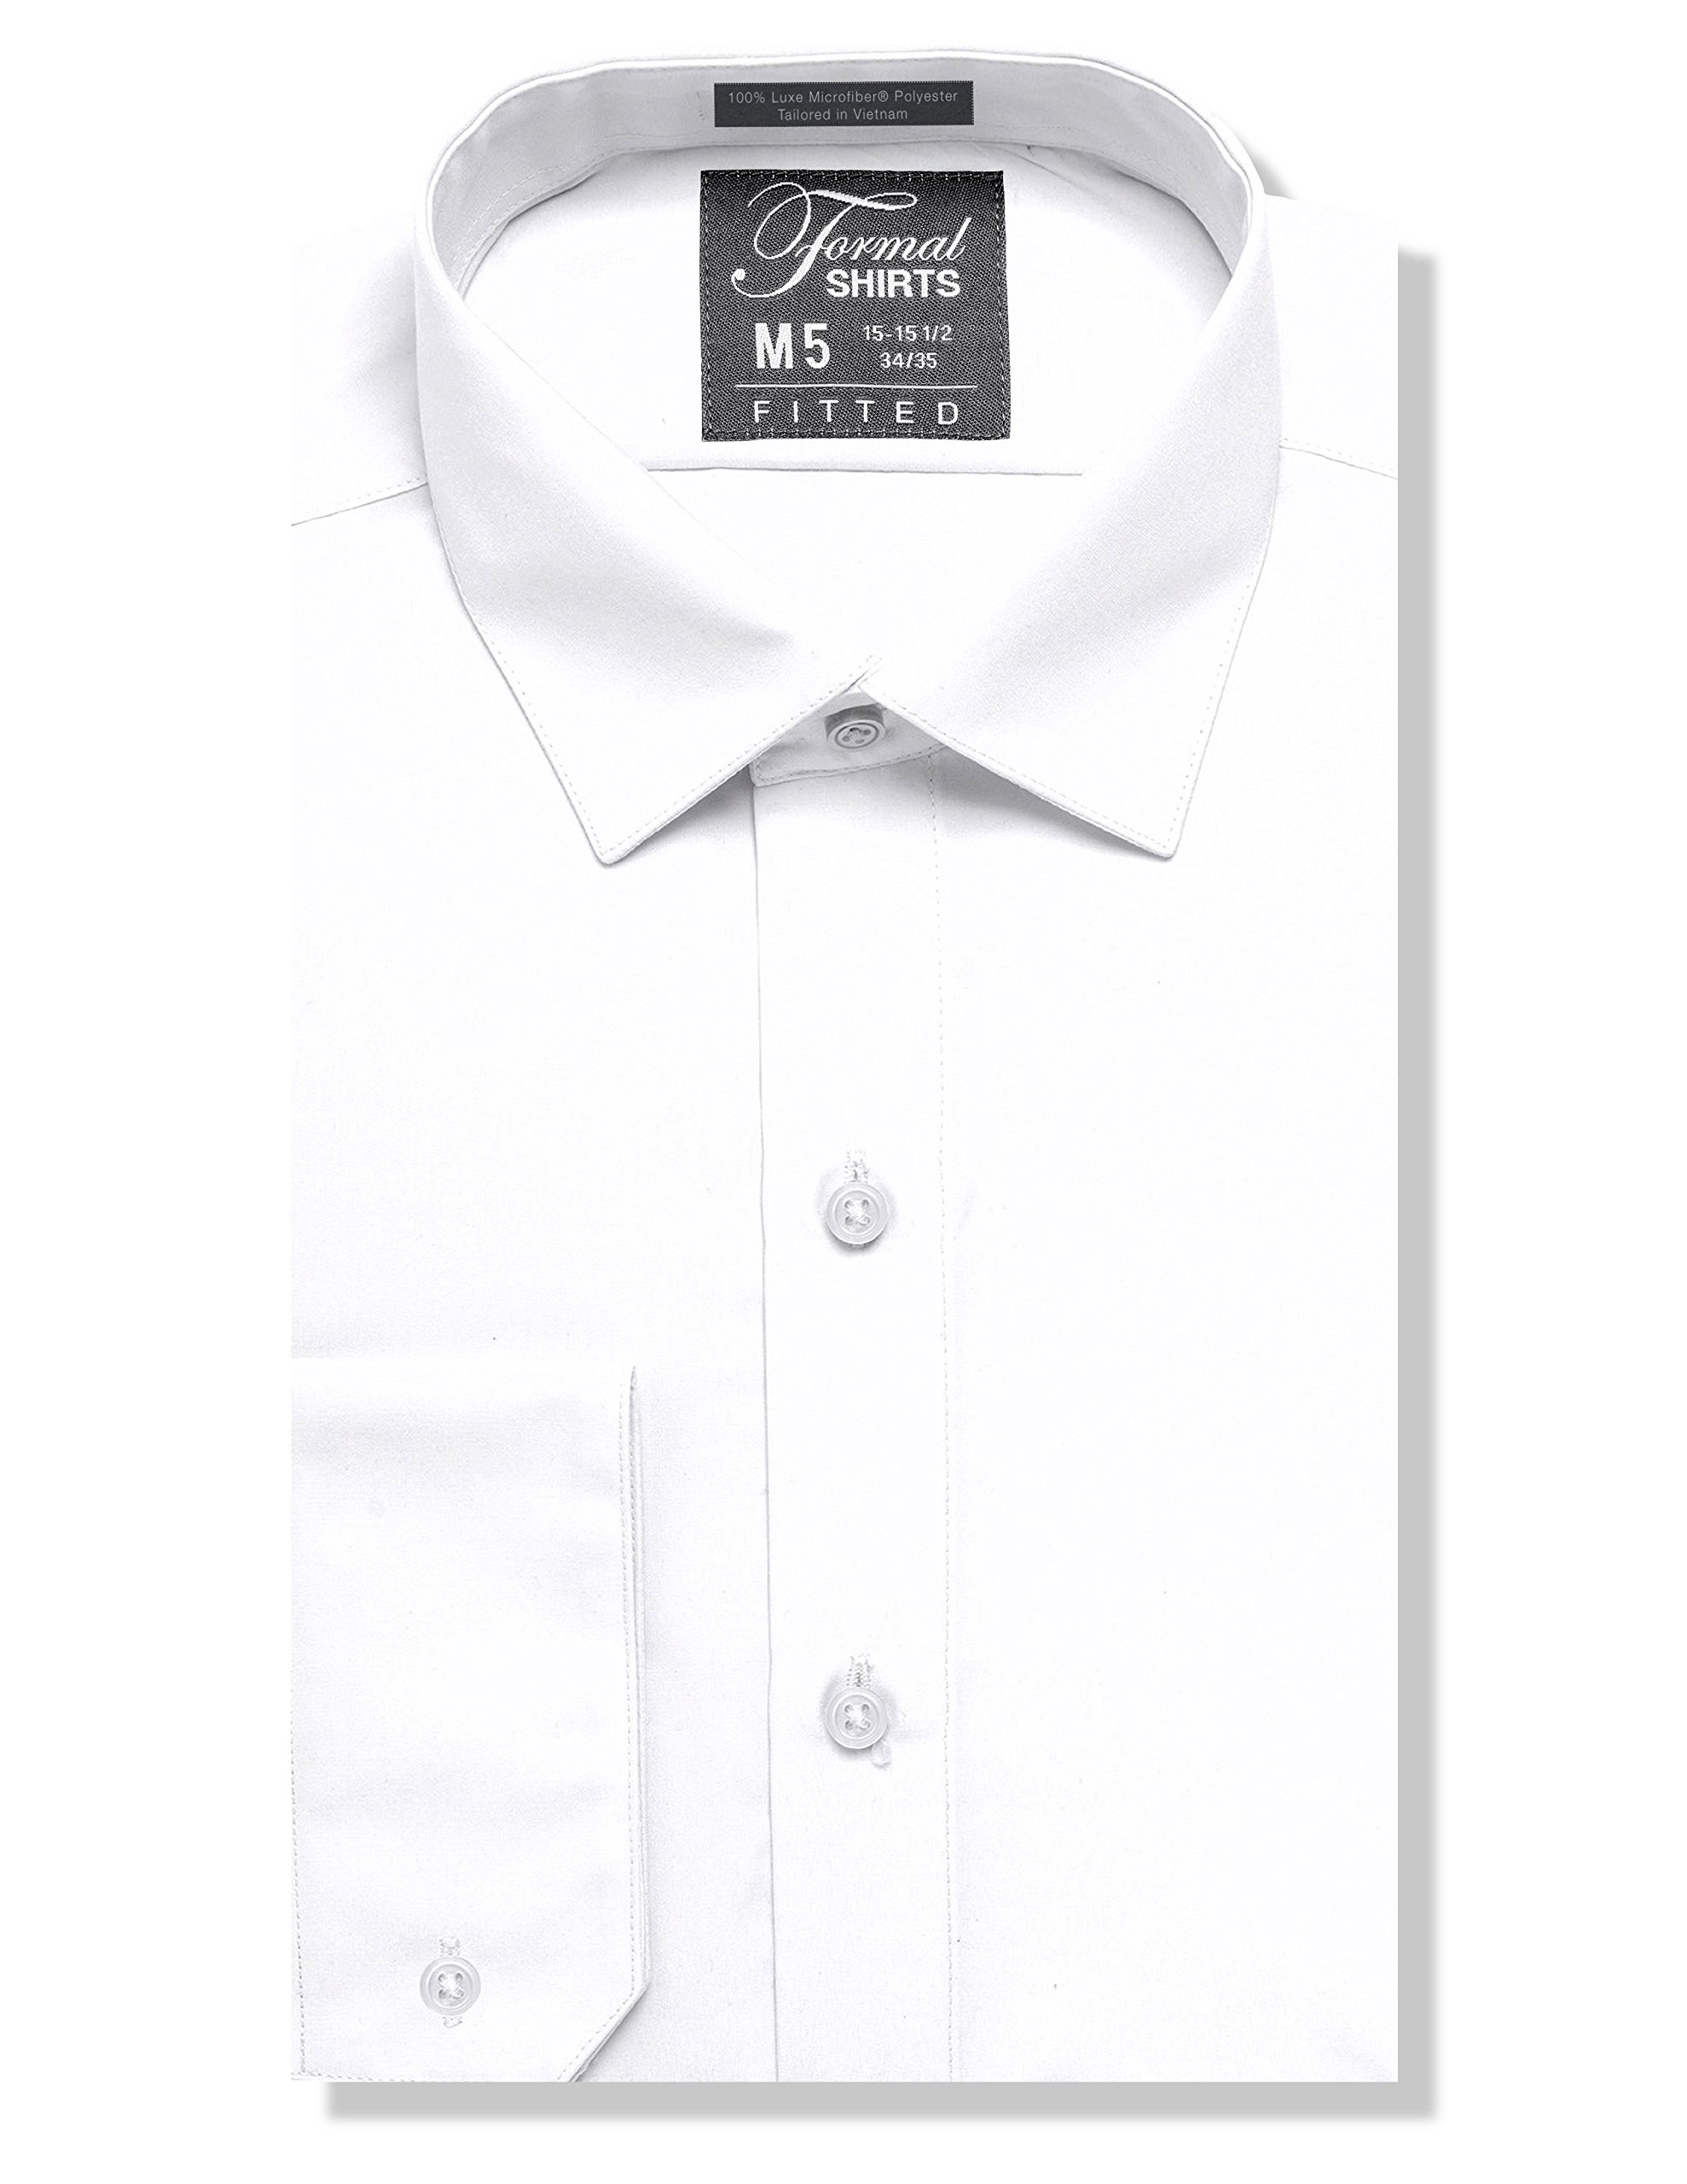 Formal Shirts Fitted Mens Solid Color Dress Shirt or Tuxedo Shirt, 100 Percent  Luxe Microfiber, Spread Collar White 15-15.5'' Neck 38-39'' Sleeve